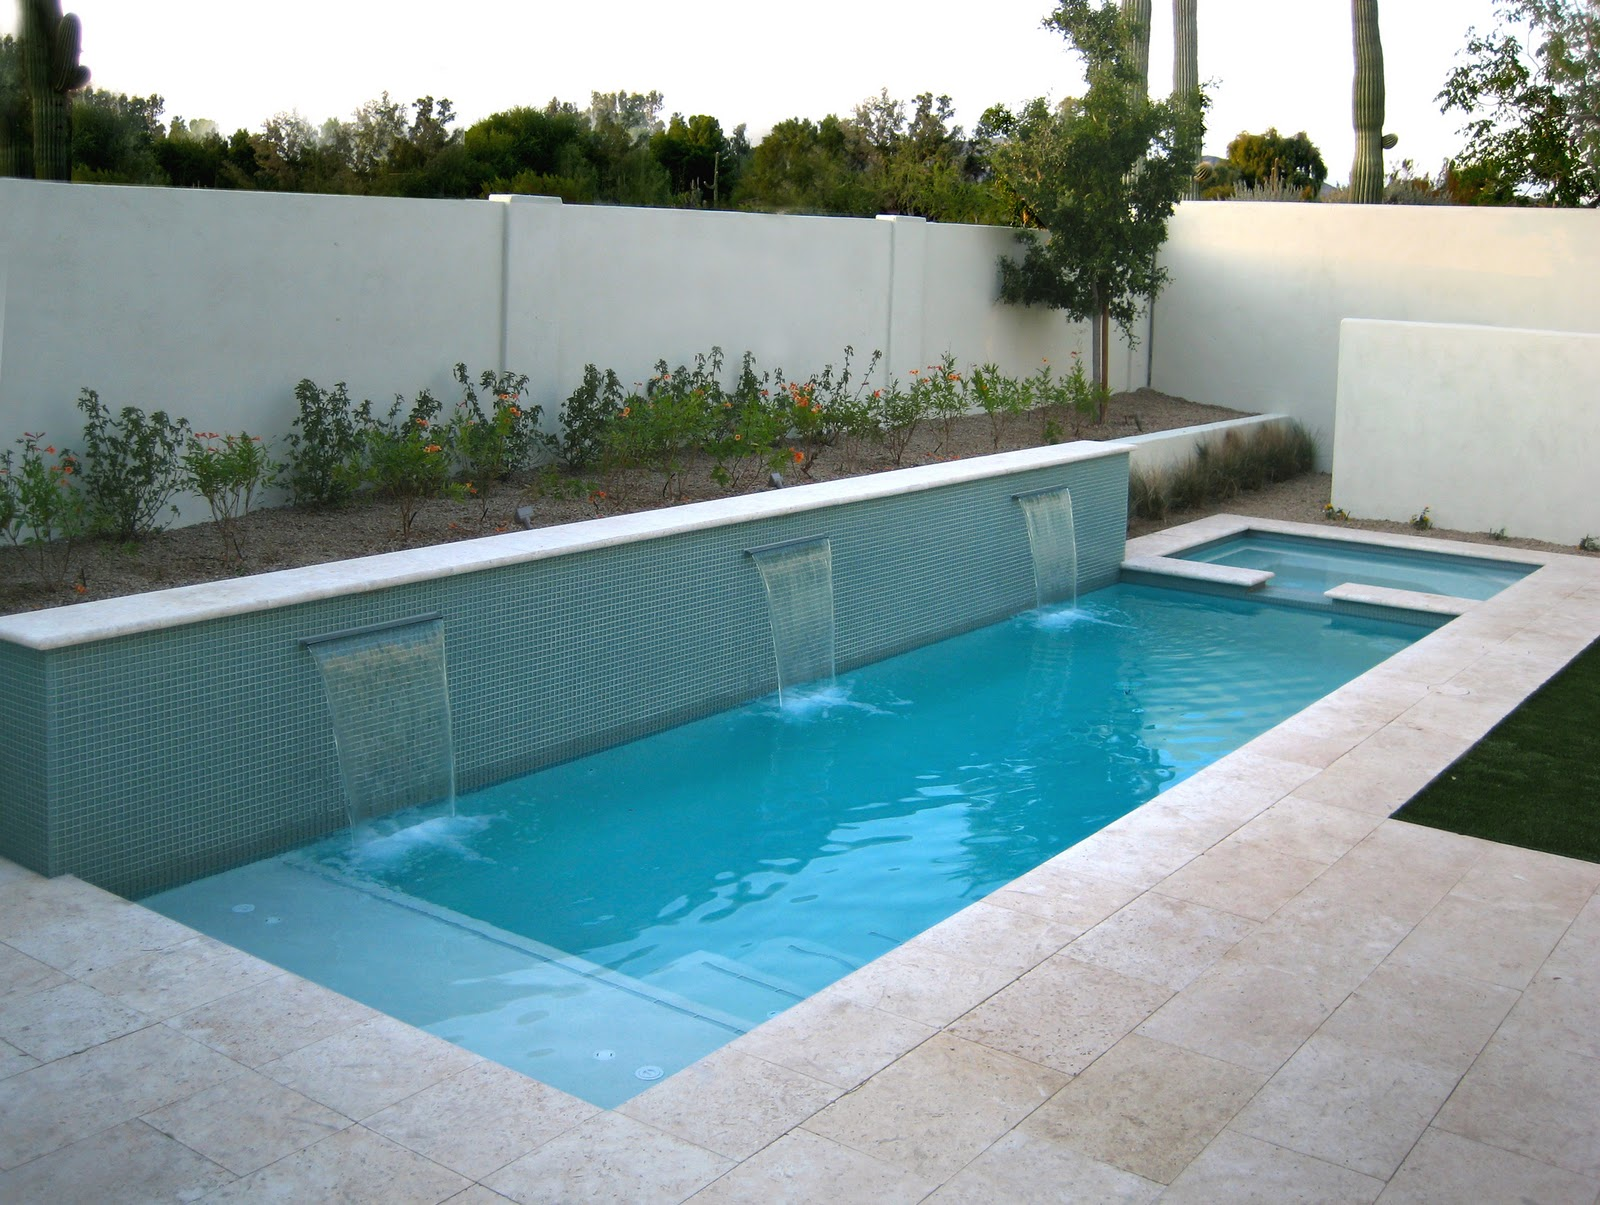 Swimming pools in small spaces alpentile glass tile for Garden pool designs ideas